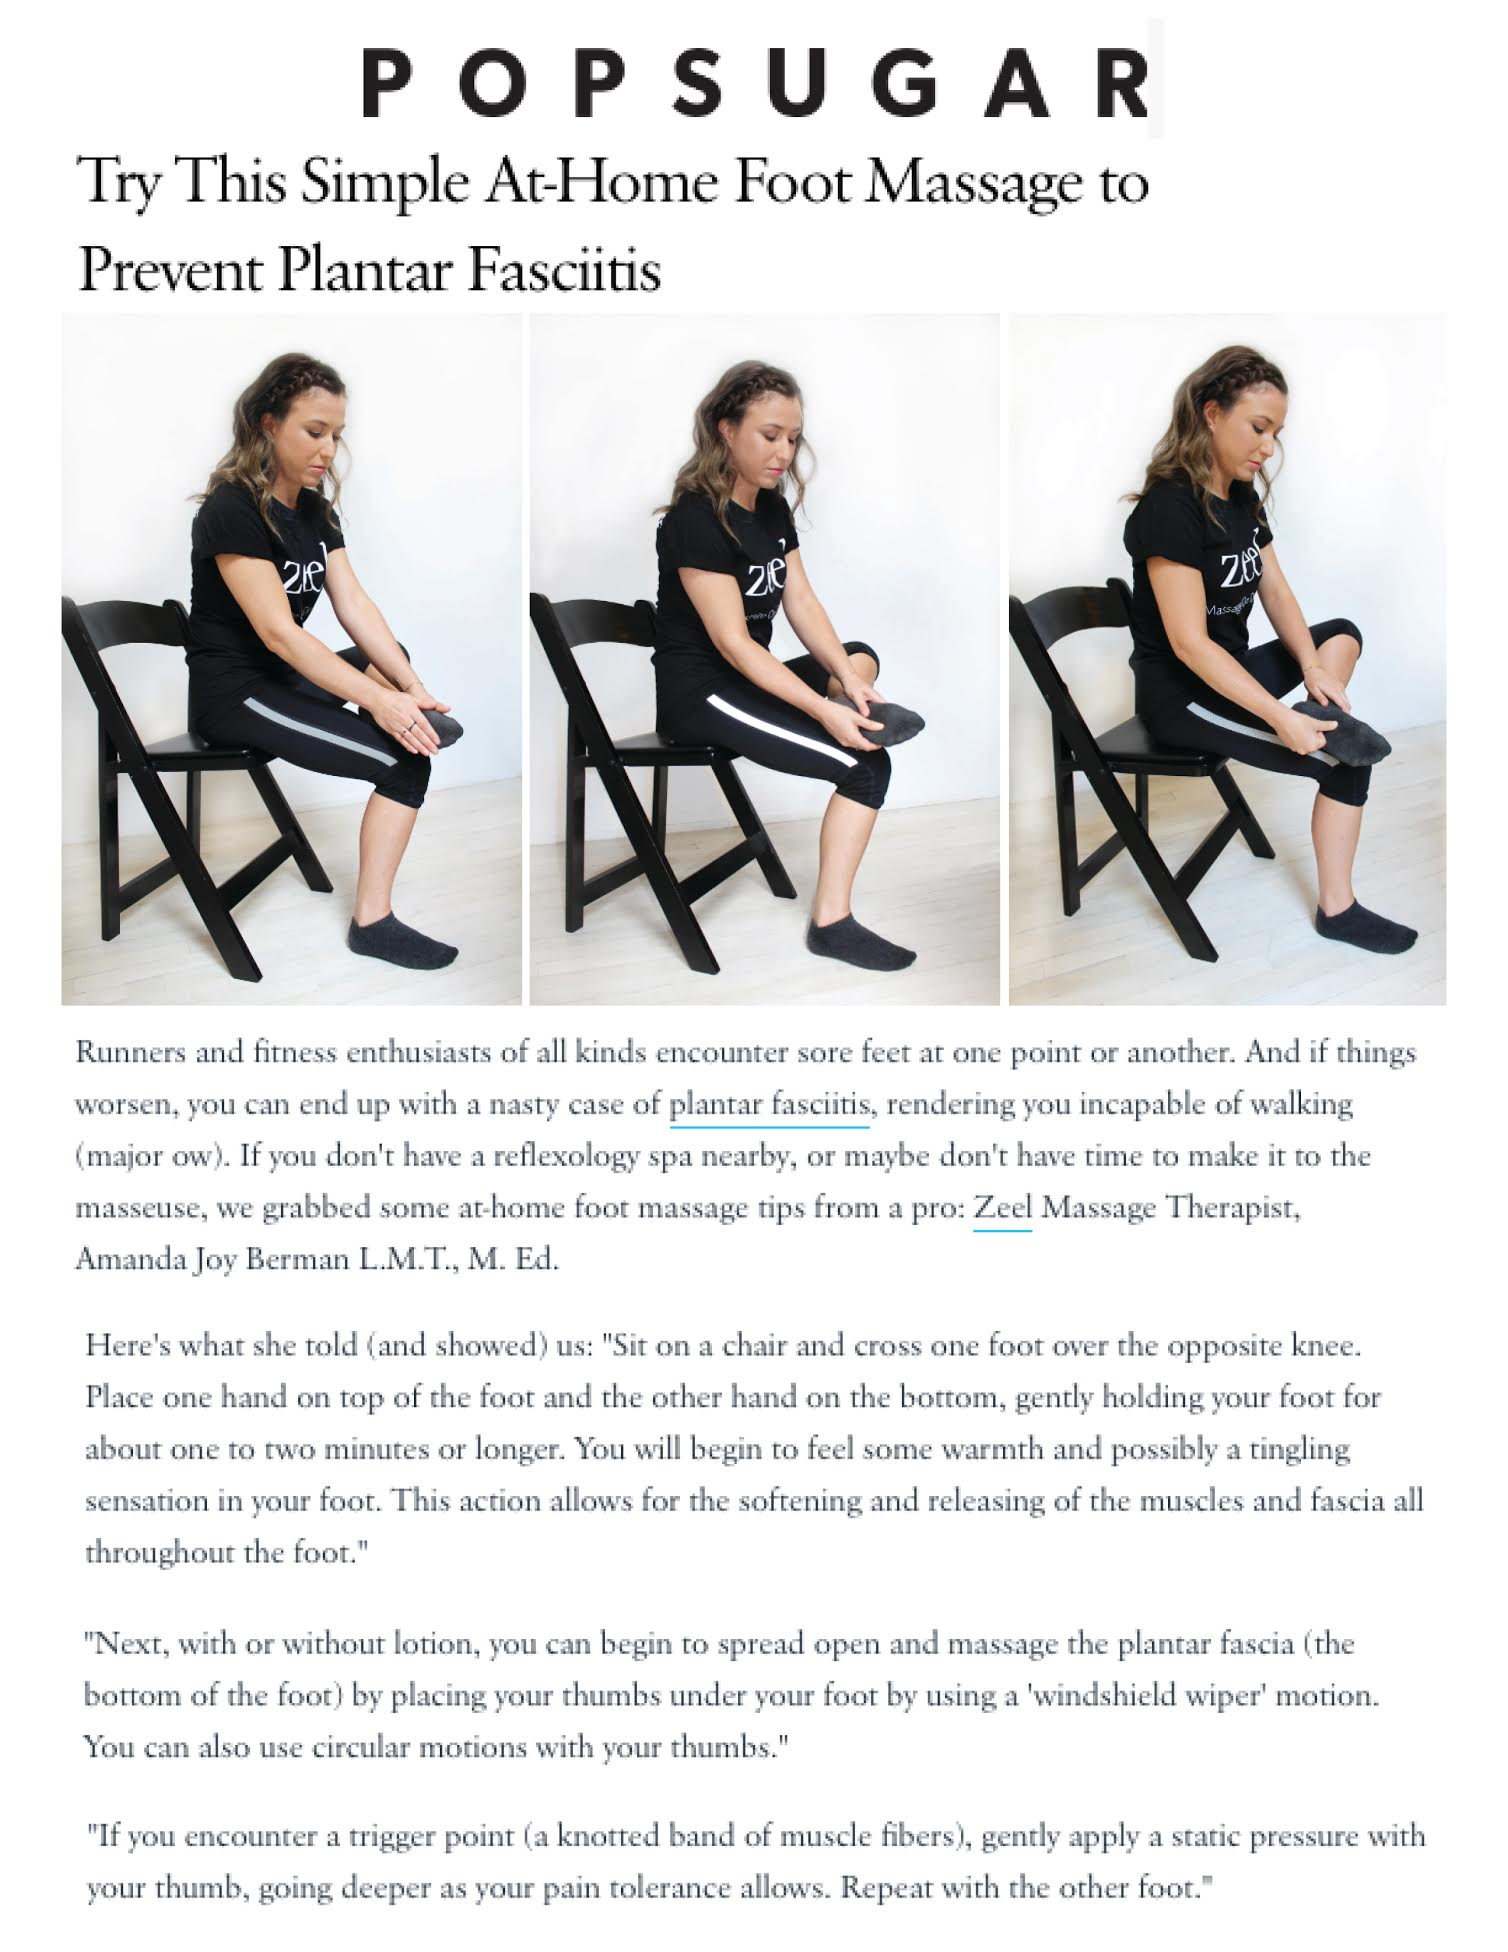 Try This Simple At-Home Foot Massage to Prevent Plantar Fasciitis